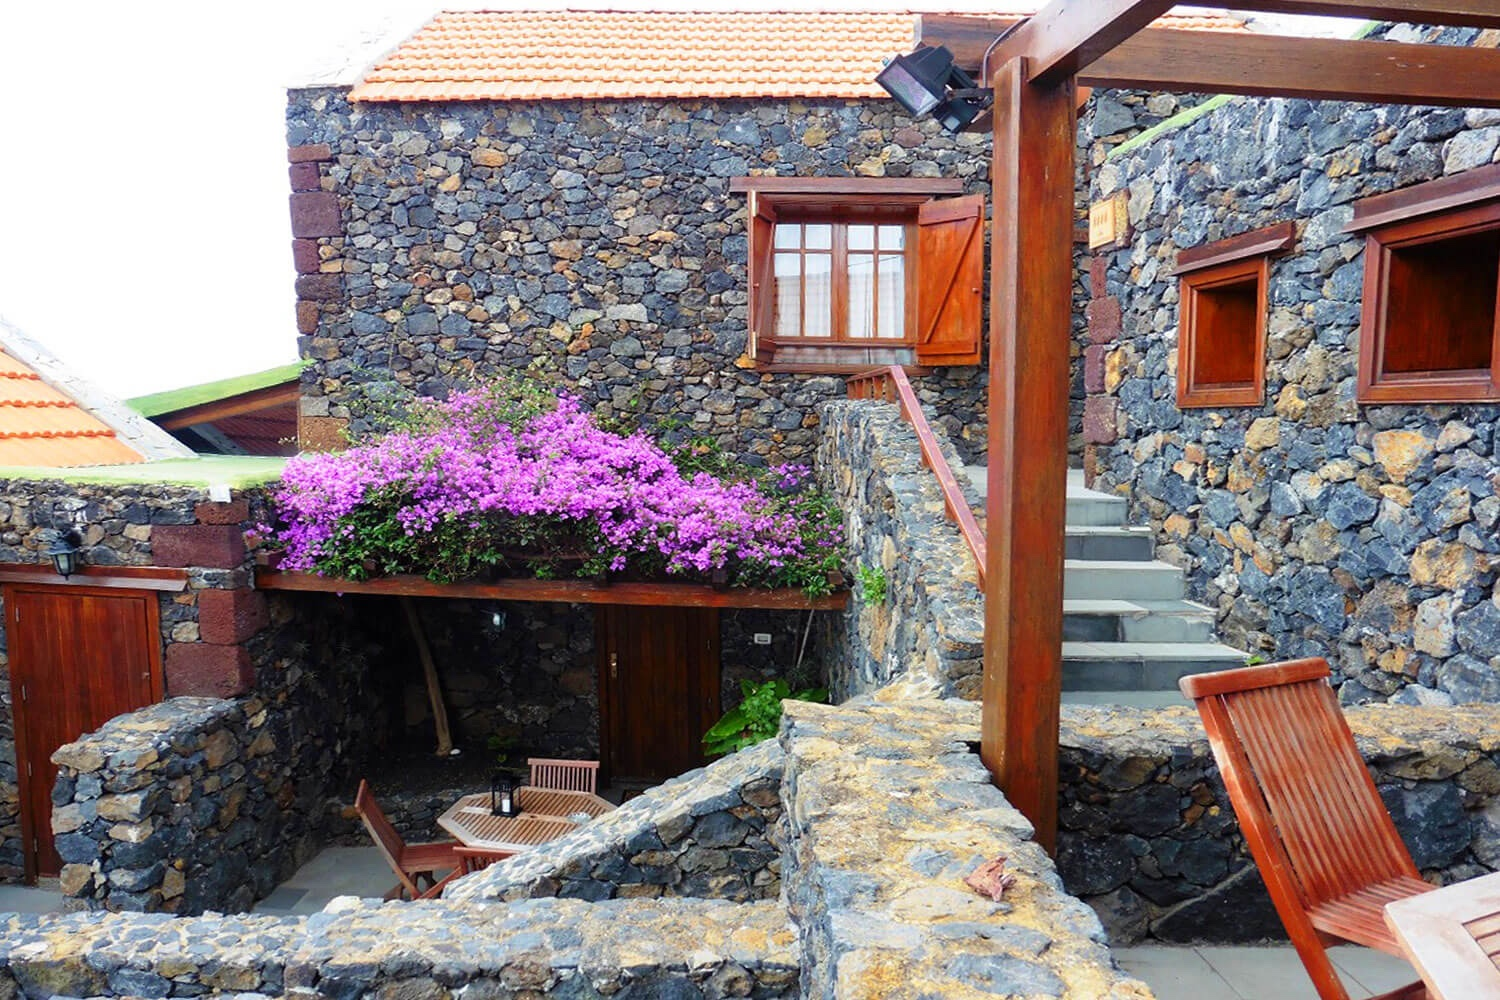 This typical Canarian stone house for 4 people is part of a very well renovated 3-unit complex in the village of El Mocanal with beautiful views of the landscape and the Atlantic